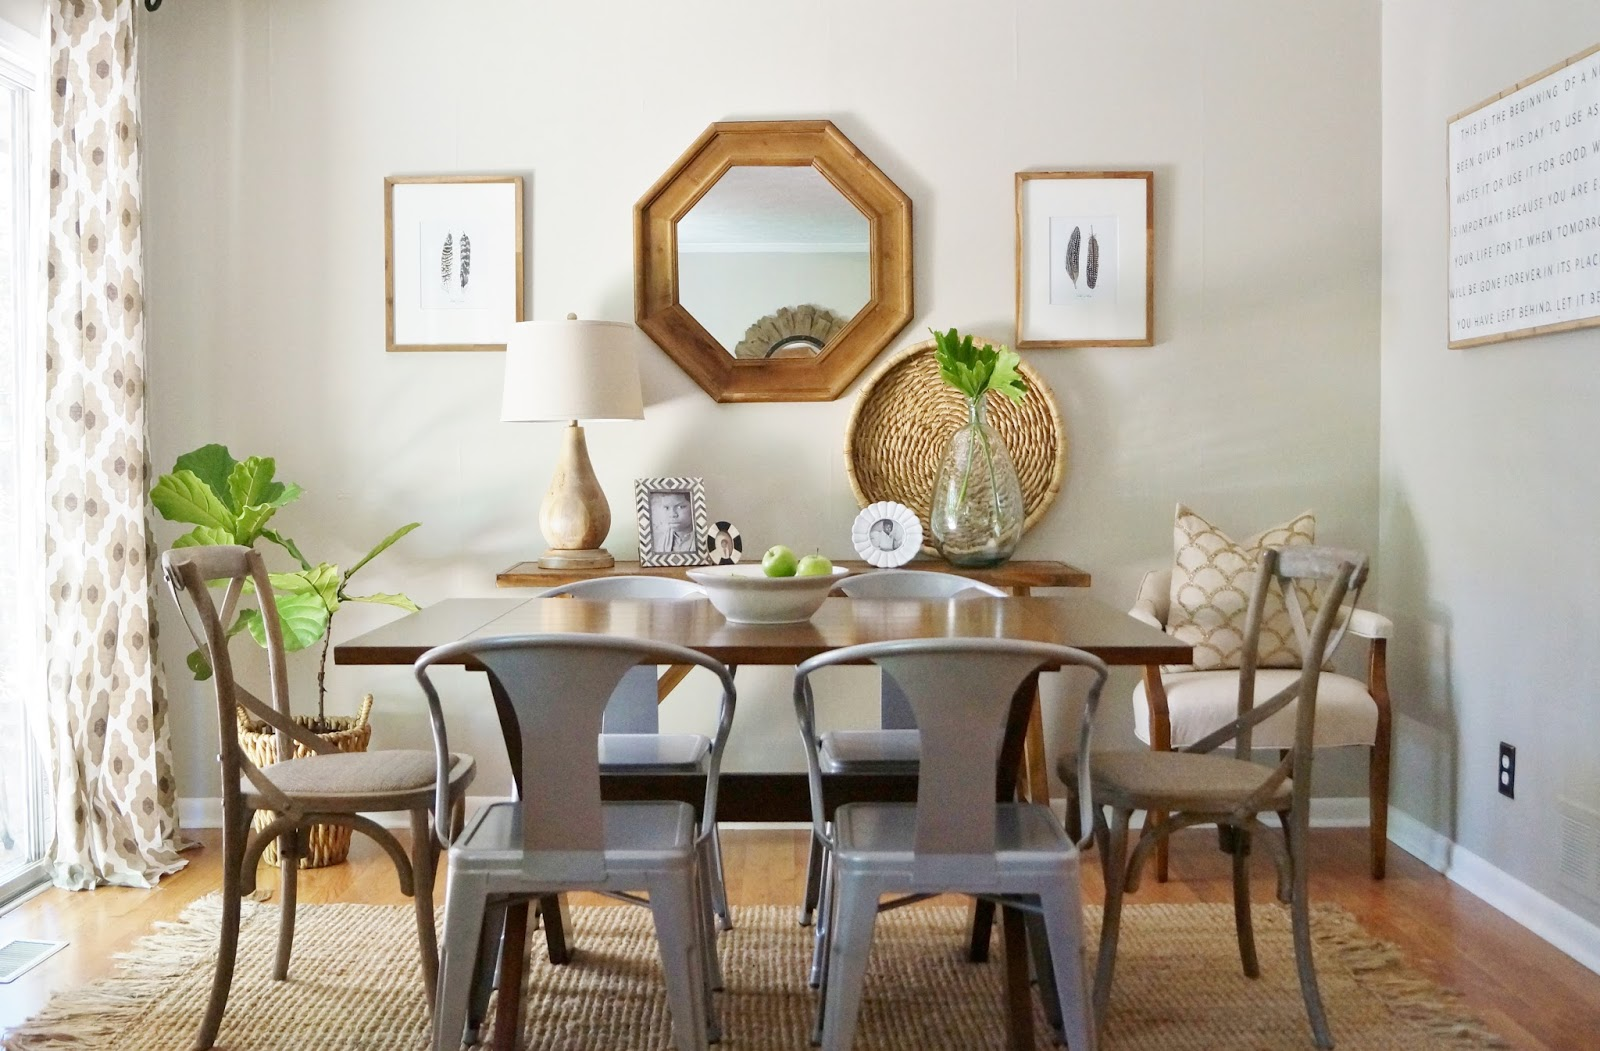 Dining Room Solutions For Small Spaces: Don't Disturb This Groove: My Neutral Dining Room